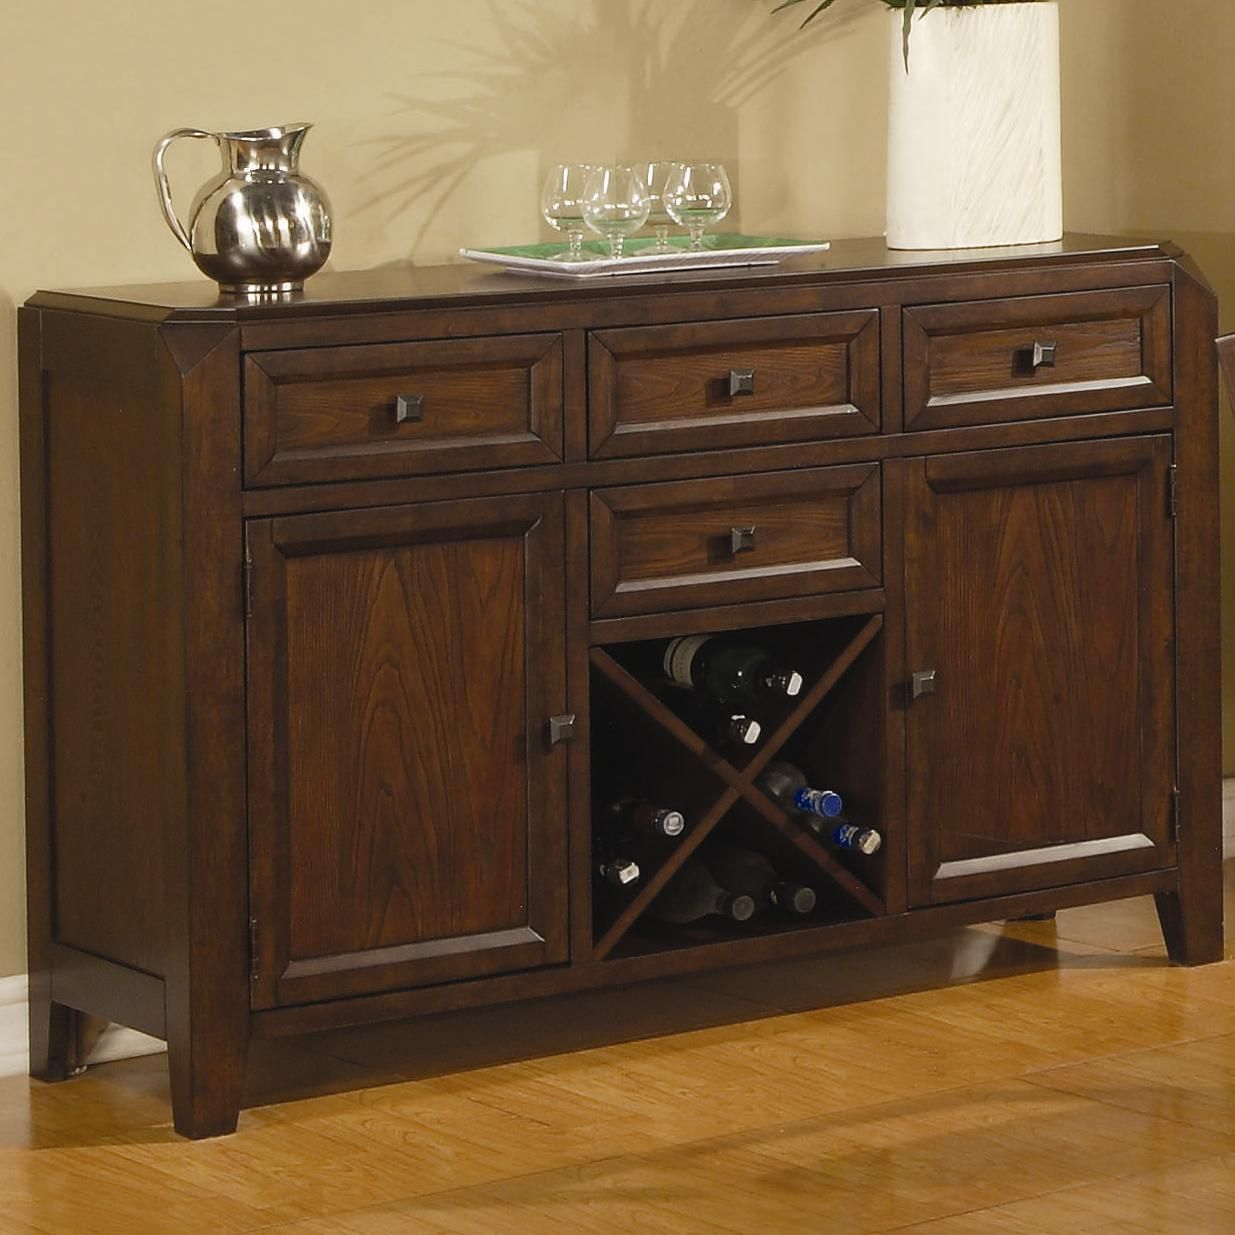 Coaster lenox 102165 brown wood buffet table in los angeles ca - Buffet table integree ...